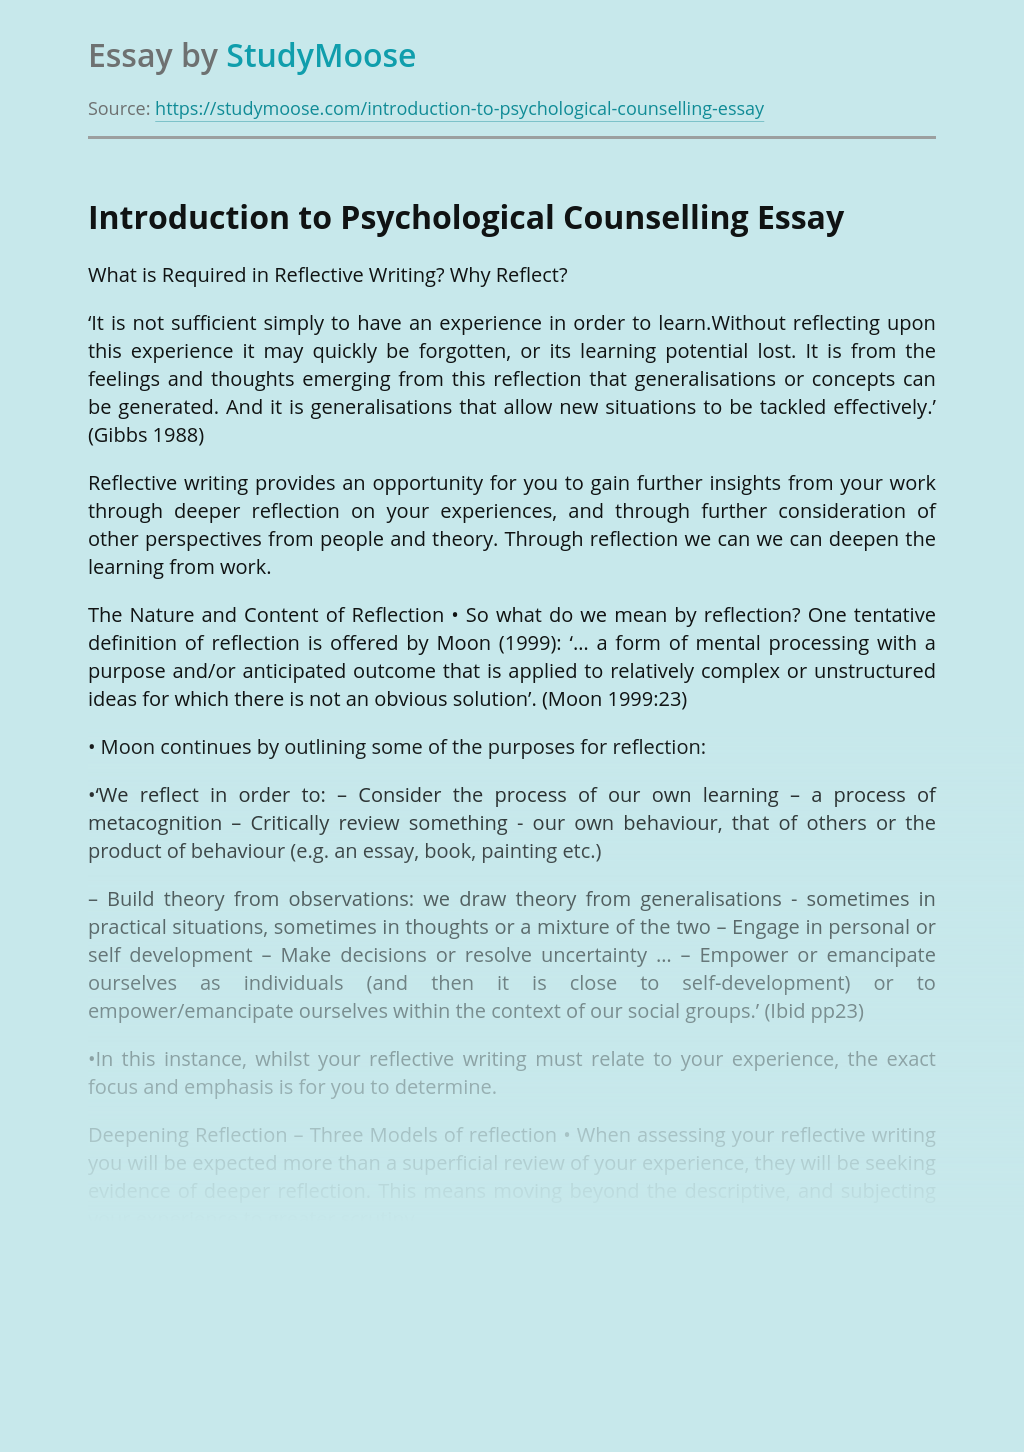 Introduction to Psychological Counselling